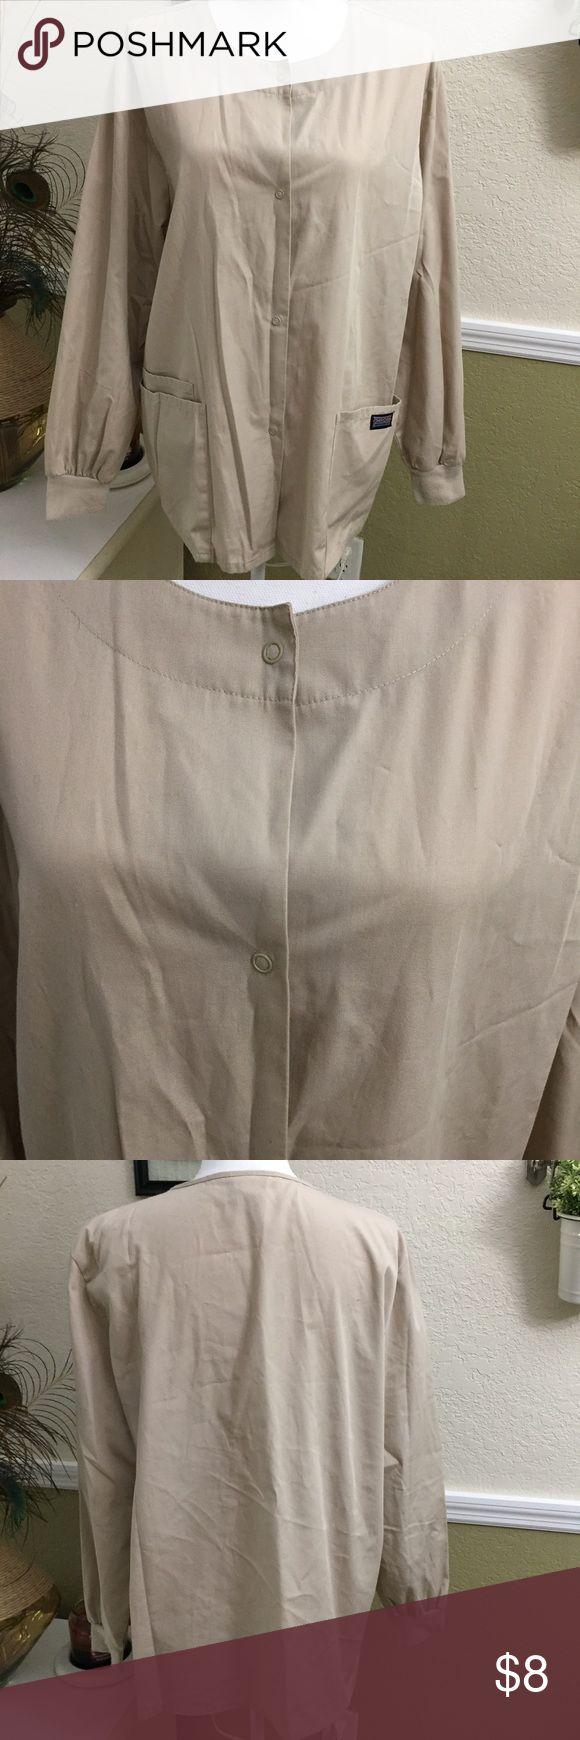 Cherokee Scrub Jacket Nice beige color jacket, has three side pockets, snaps down the front, in great condition. Cherokee Jackets & Coats Utility Jackets